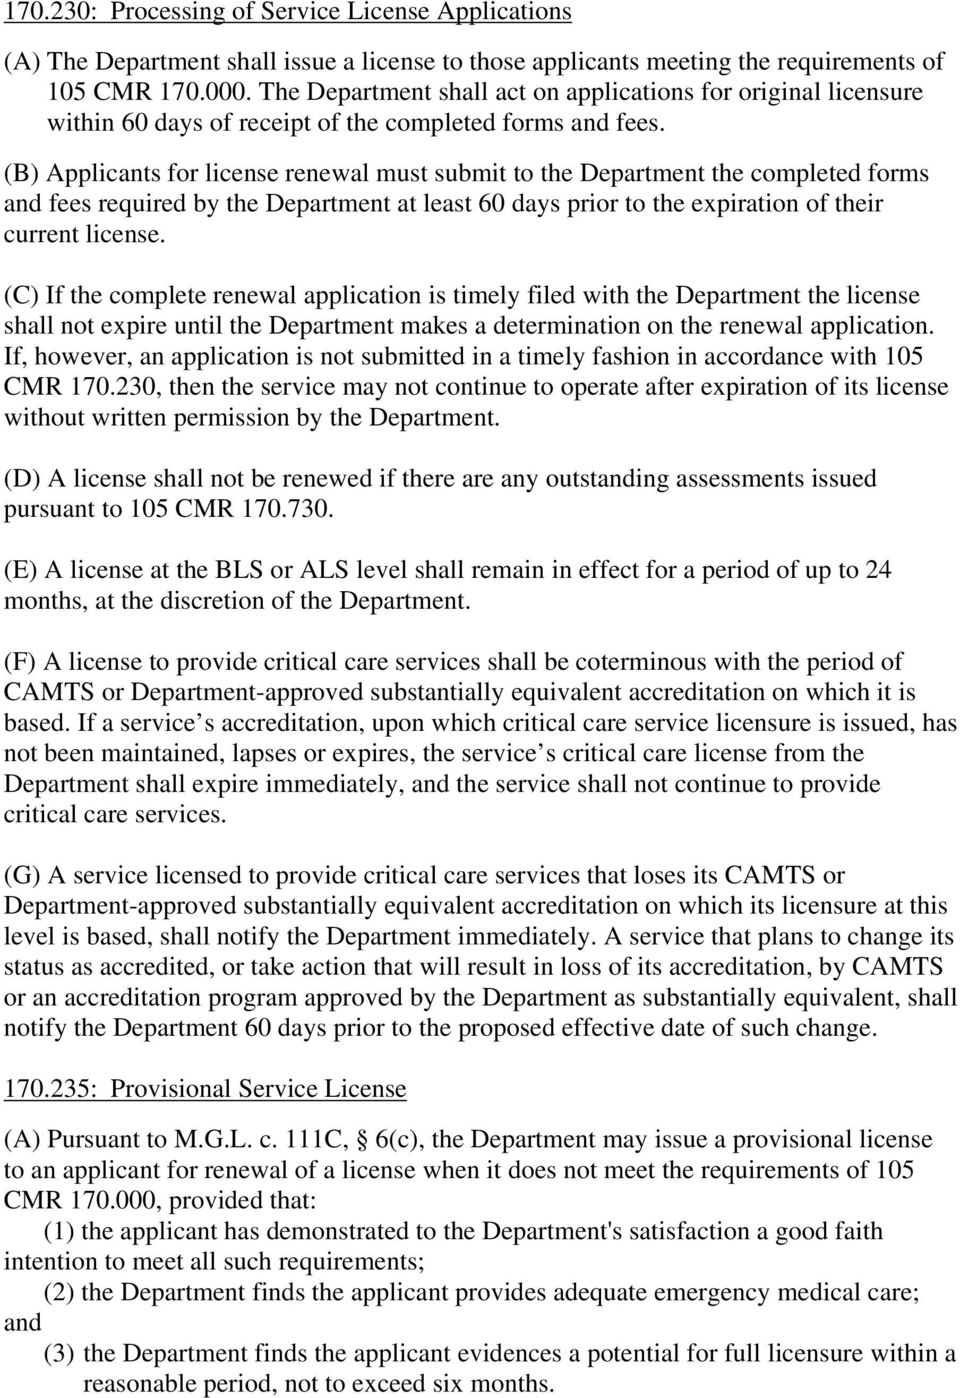 (B) Applicants for license renewal must submit to the Department the completed forms and fees required by the Department at least 60 days prior to the expiration of their current license.